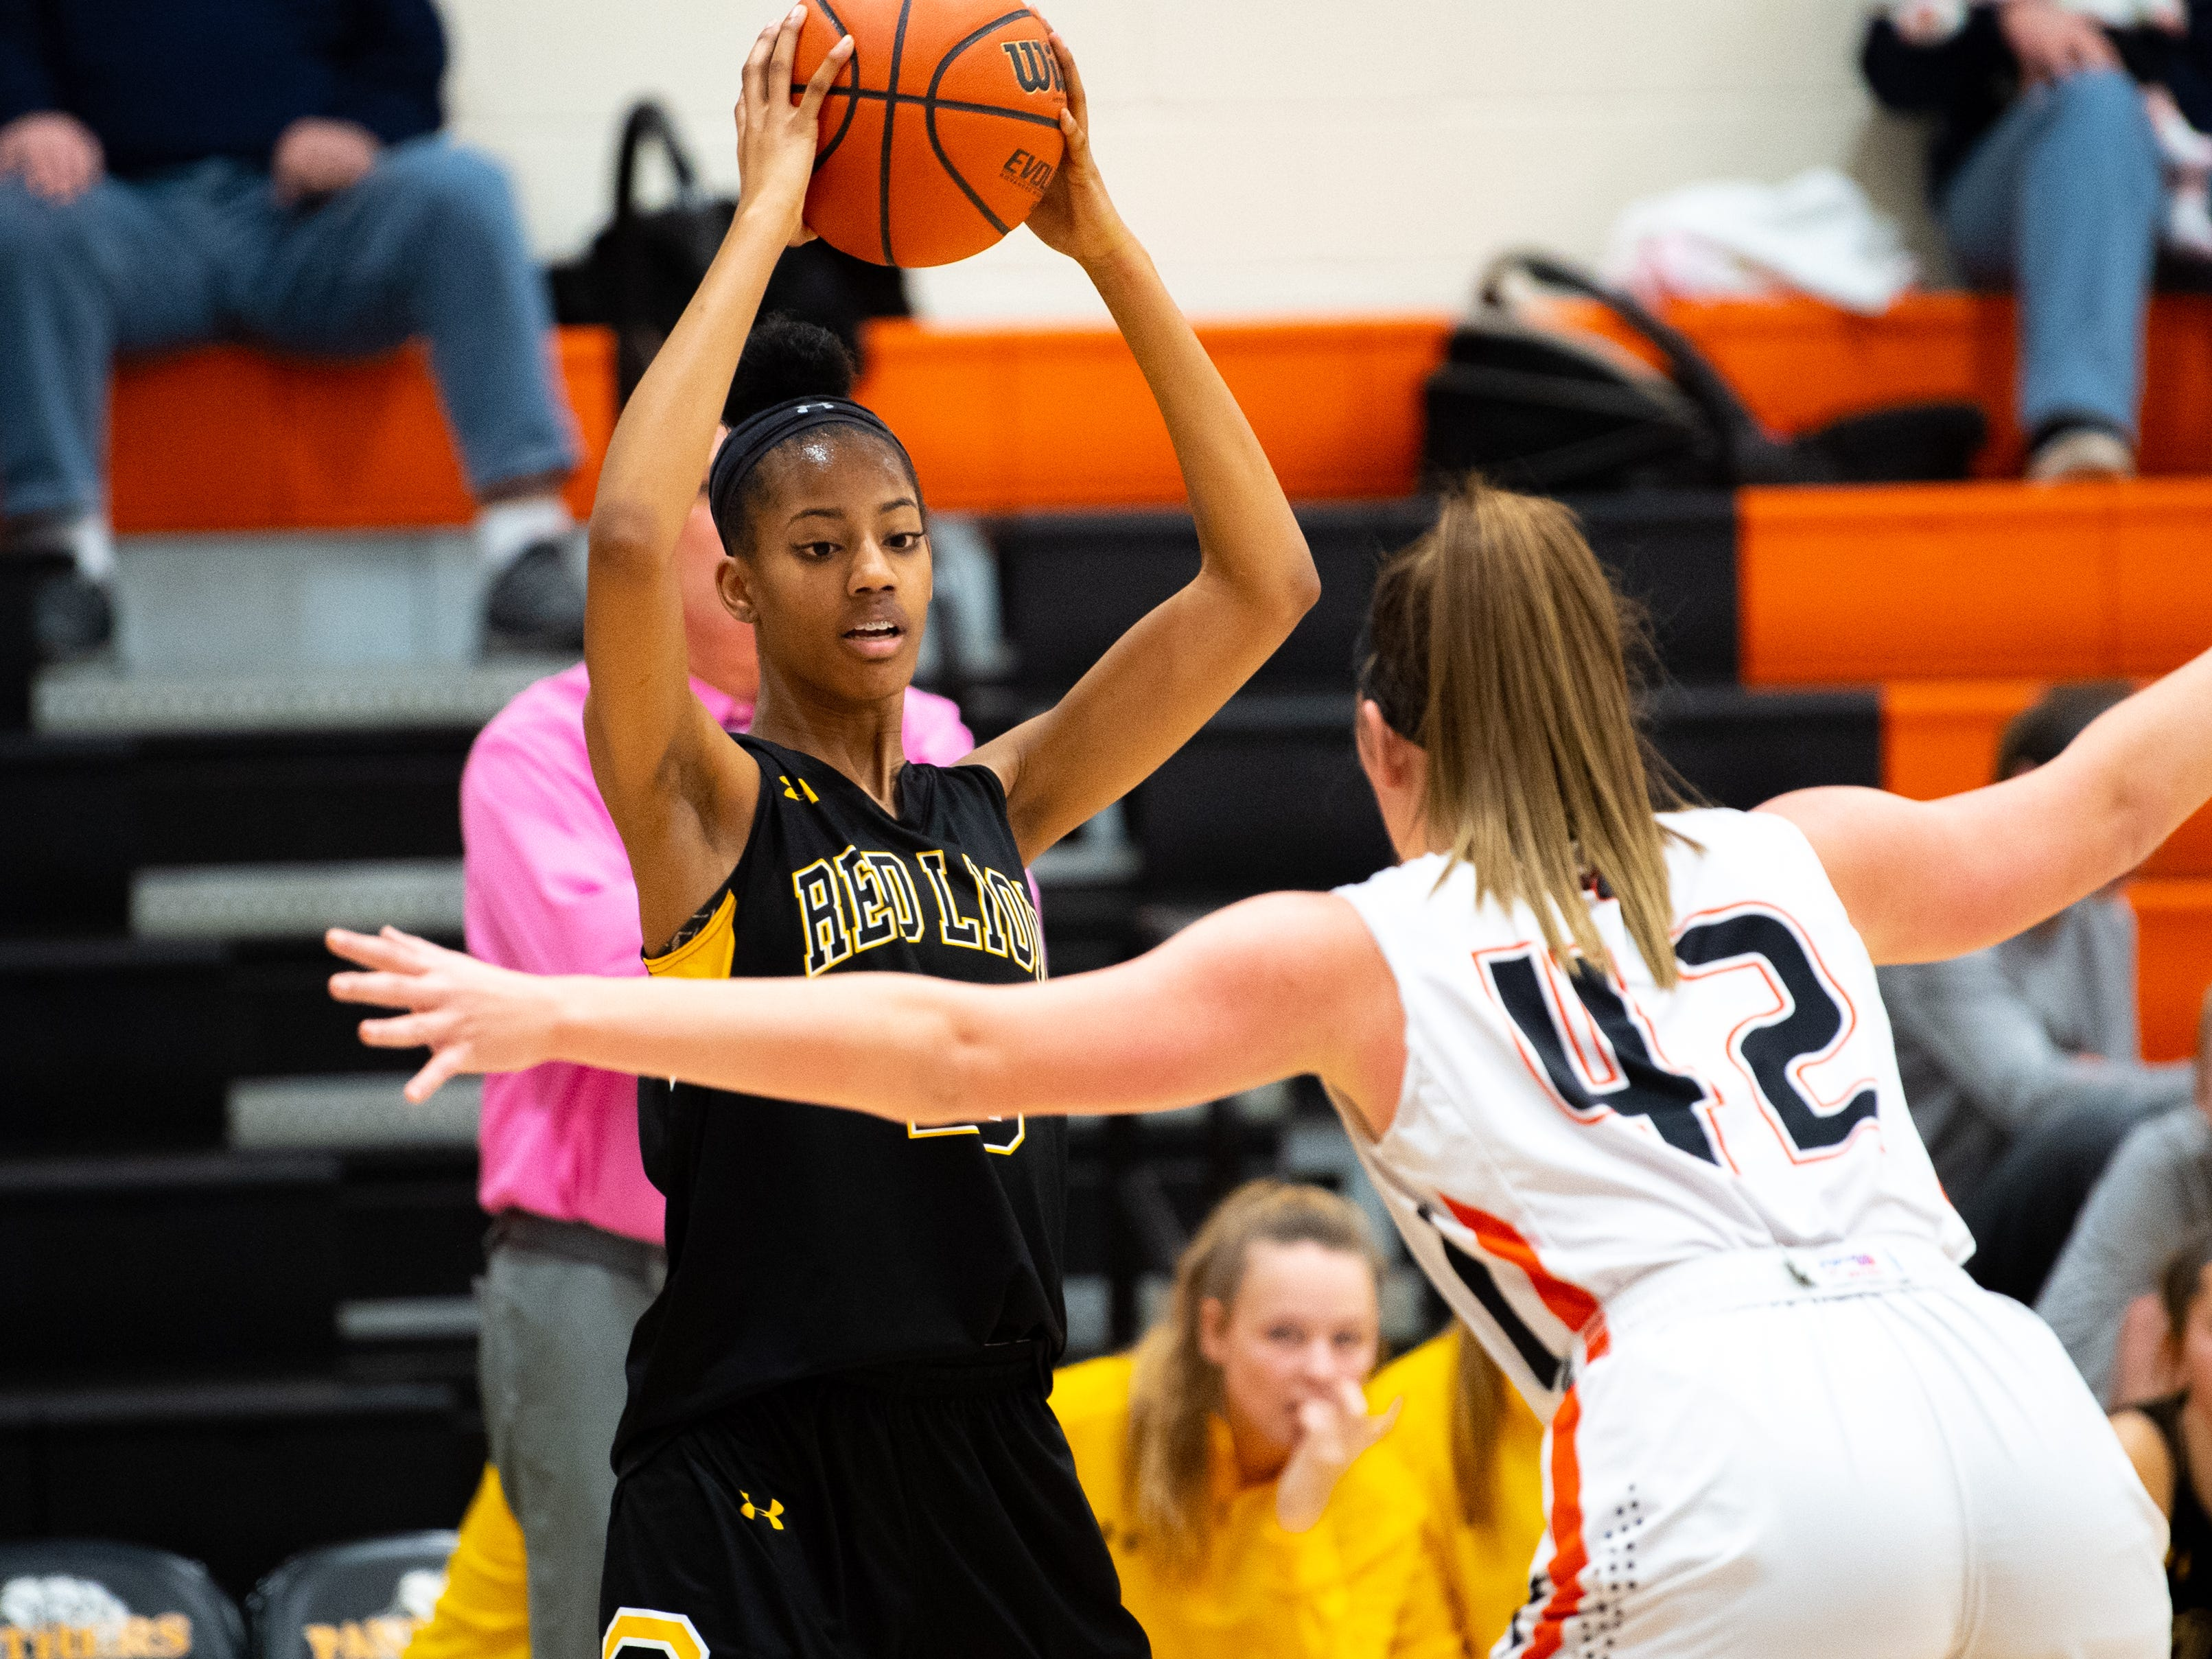 Makiah Shaw (20) sizes up the defense during the girls' basketball game between Central York and Red Lion at Central York, Tuesday, December 11, 2018. The Panthers defeated the Lions 40-38.